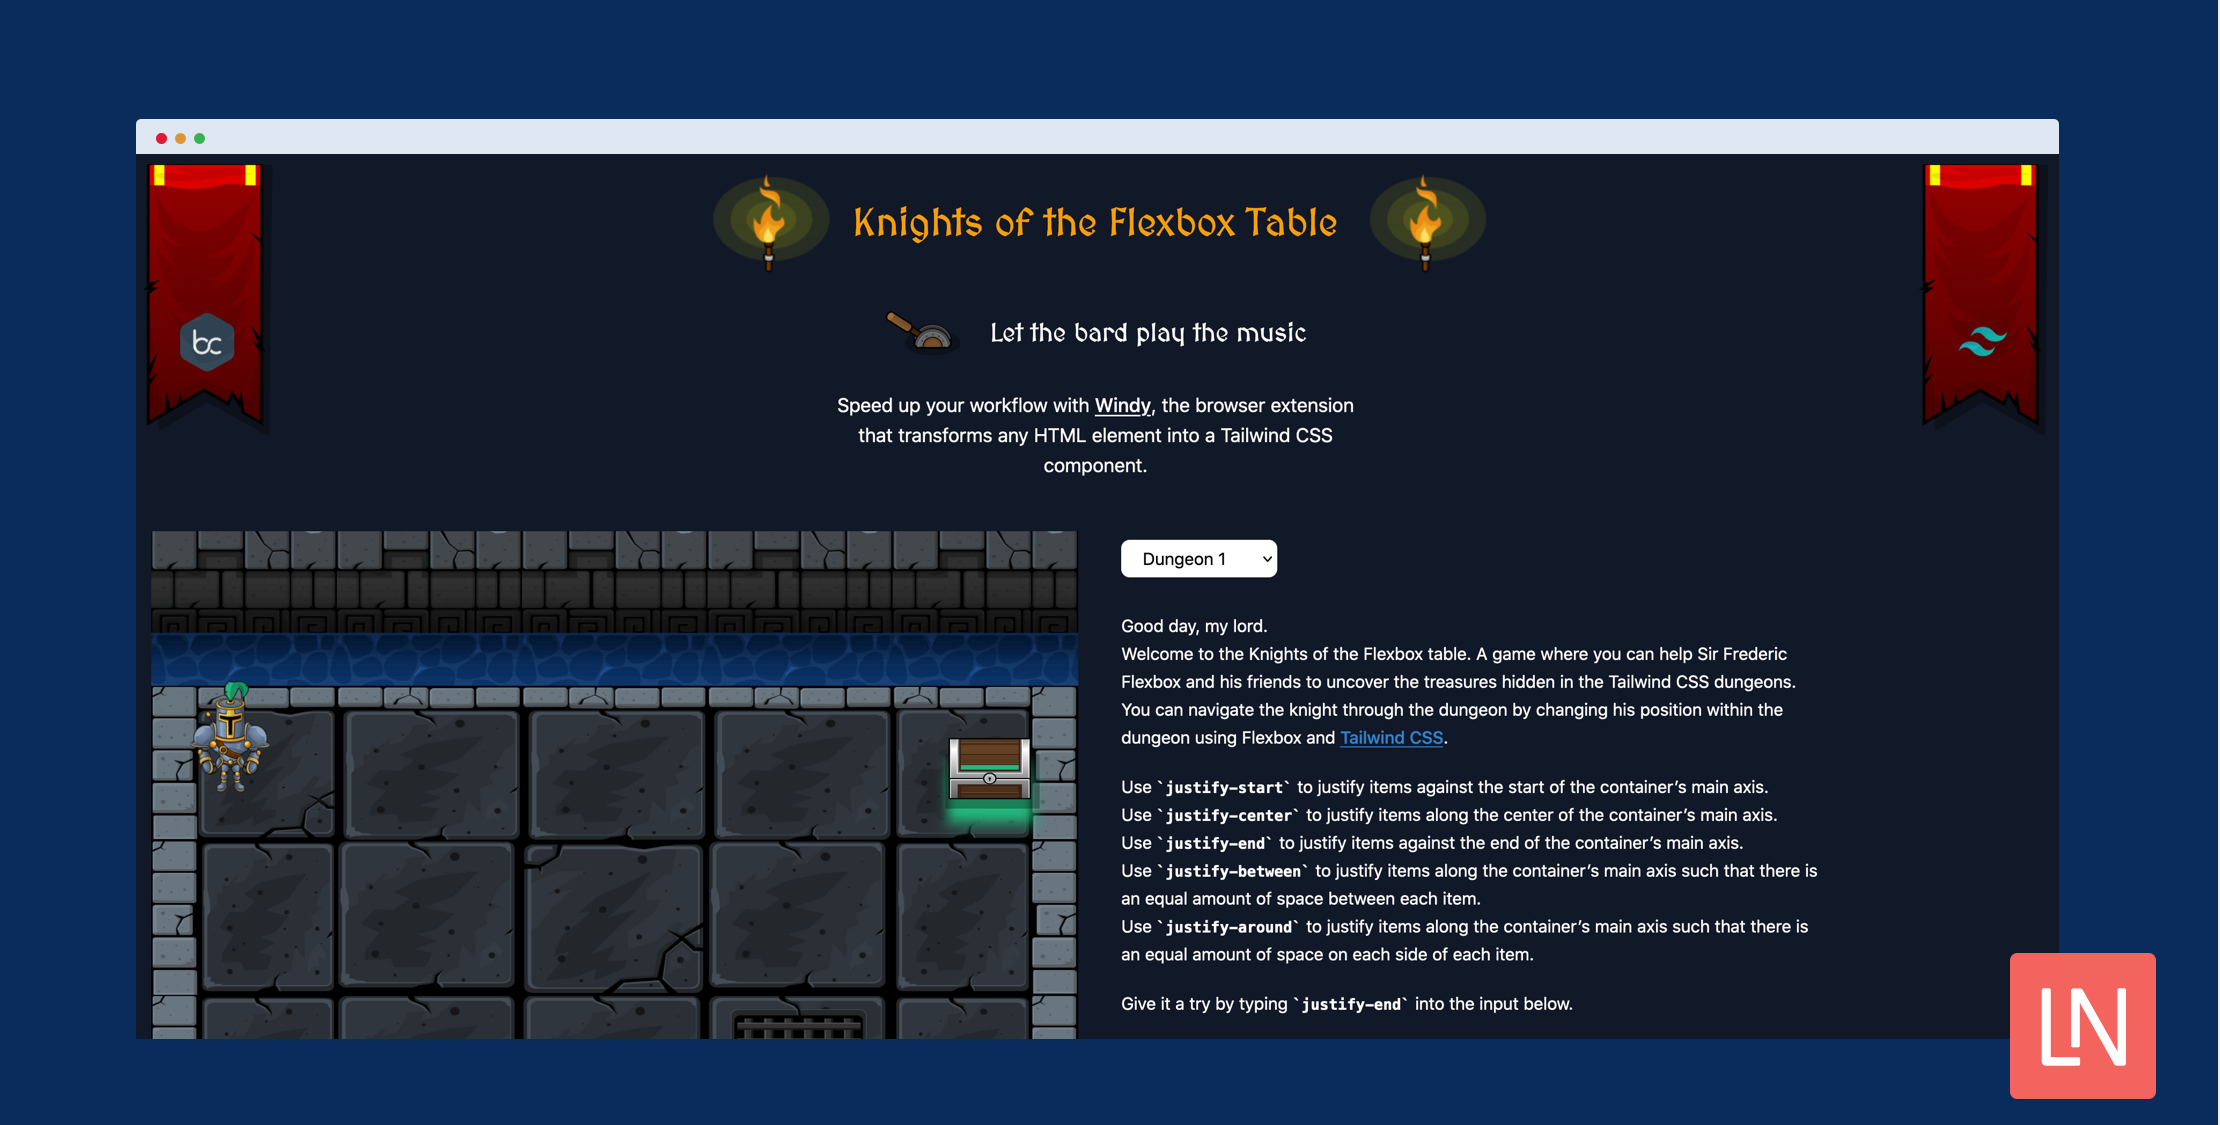 knights-flexbox-featured.png